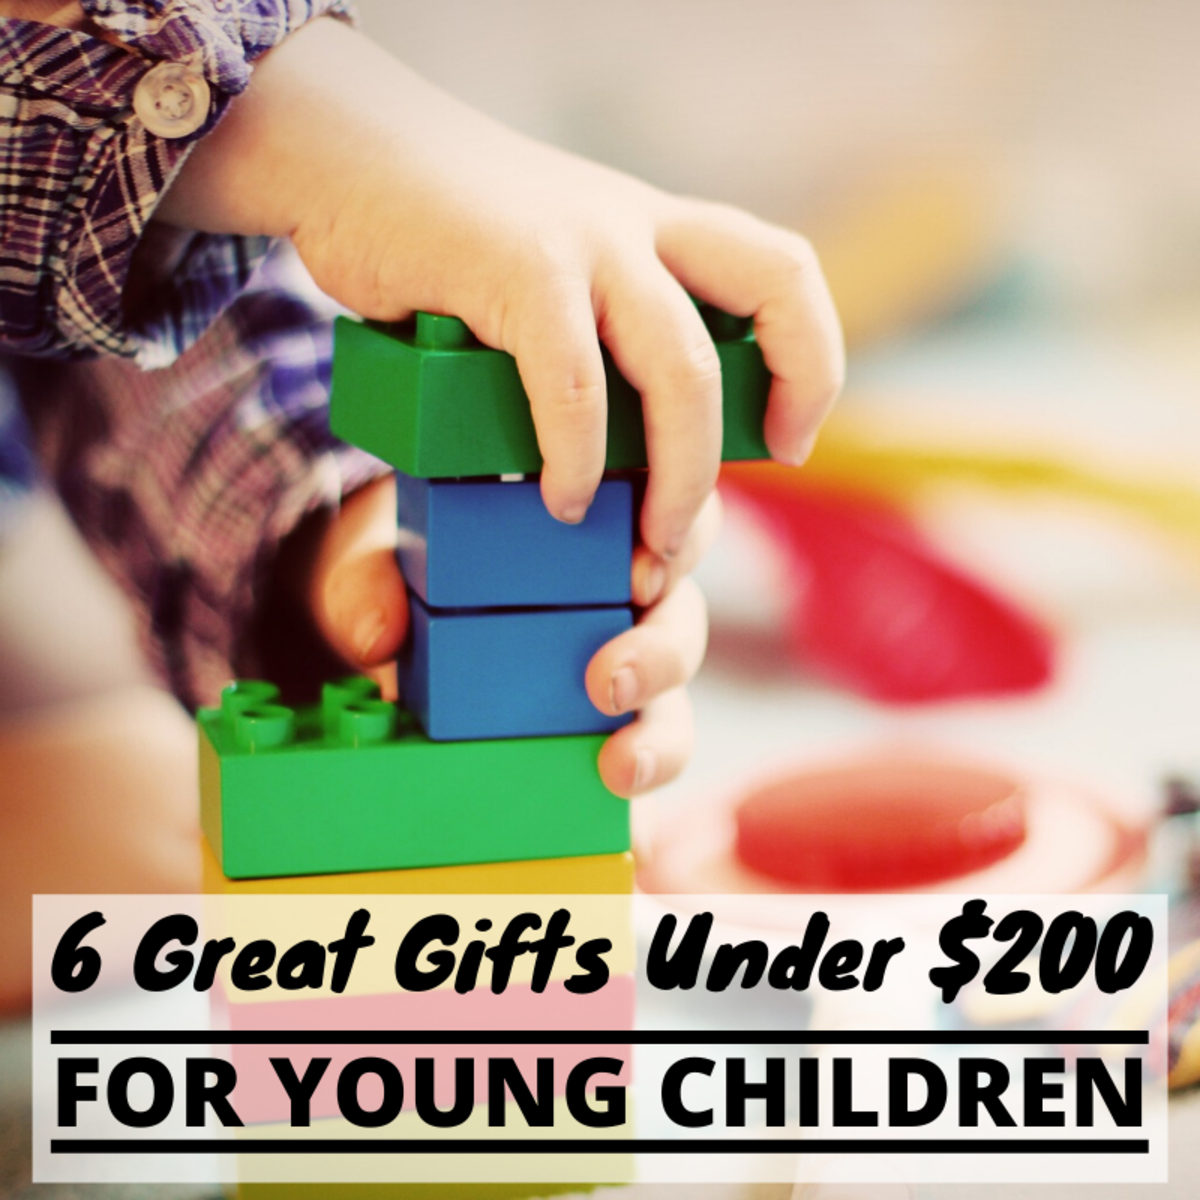 Christmas and Birthday Gift Ideas Under $200 for Children Aged 2–6